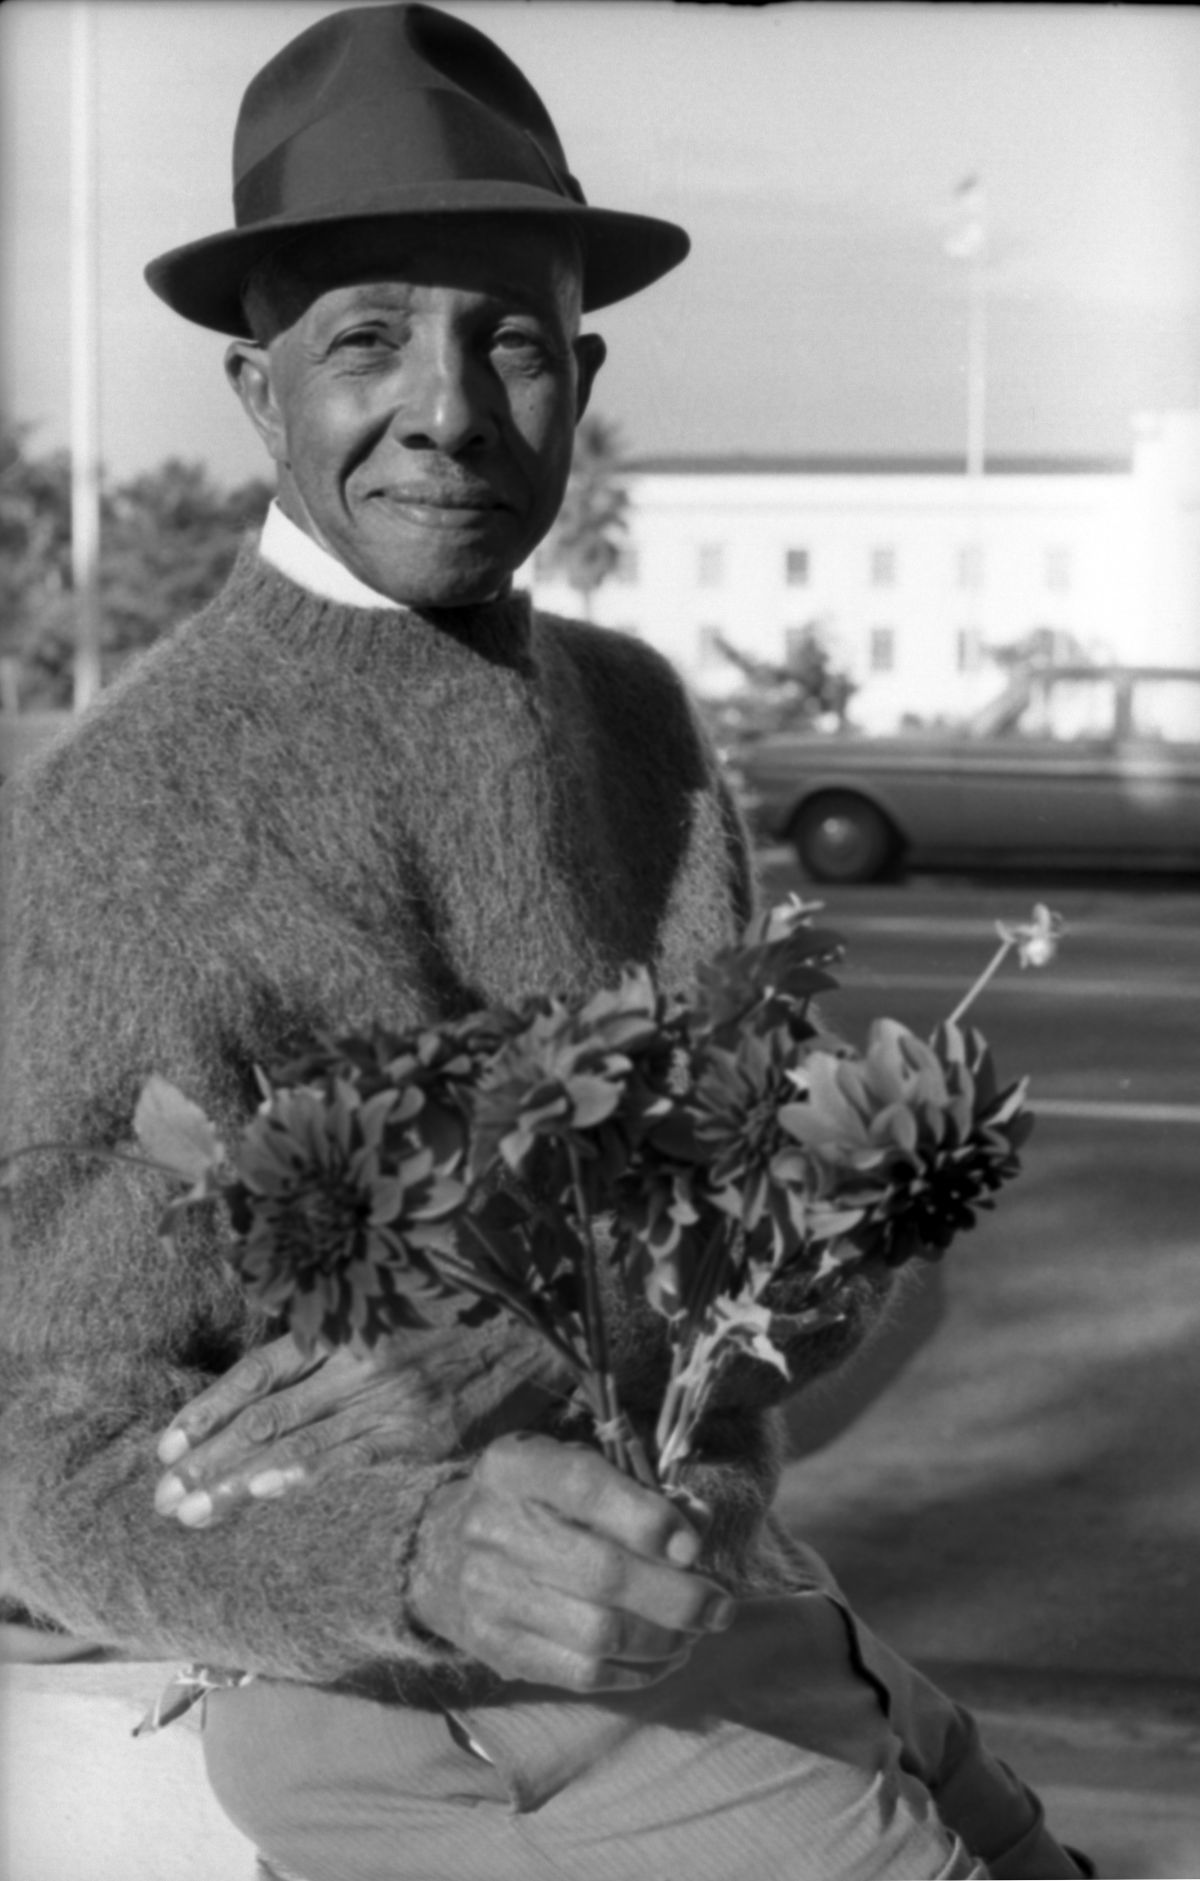 Close-up view of African American man selling flowers in Tallahassee.